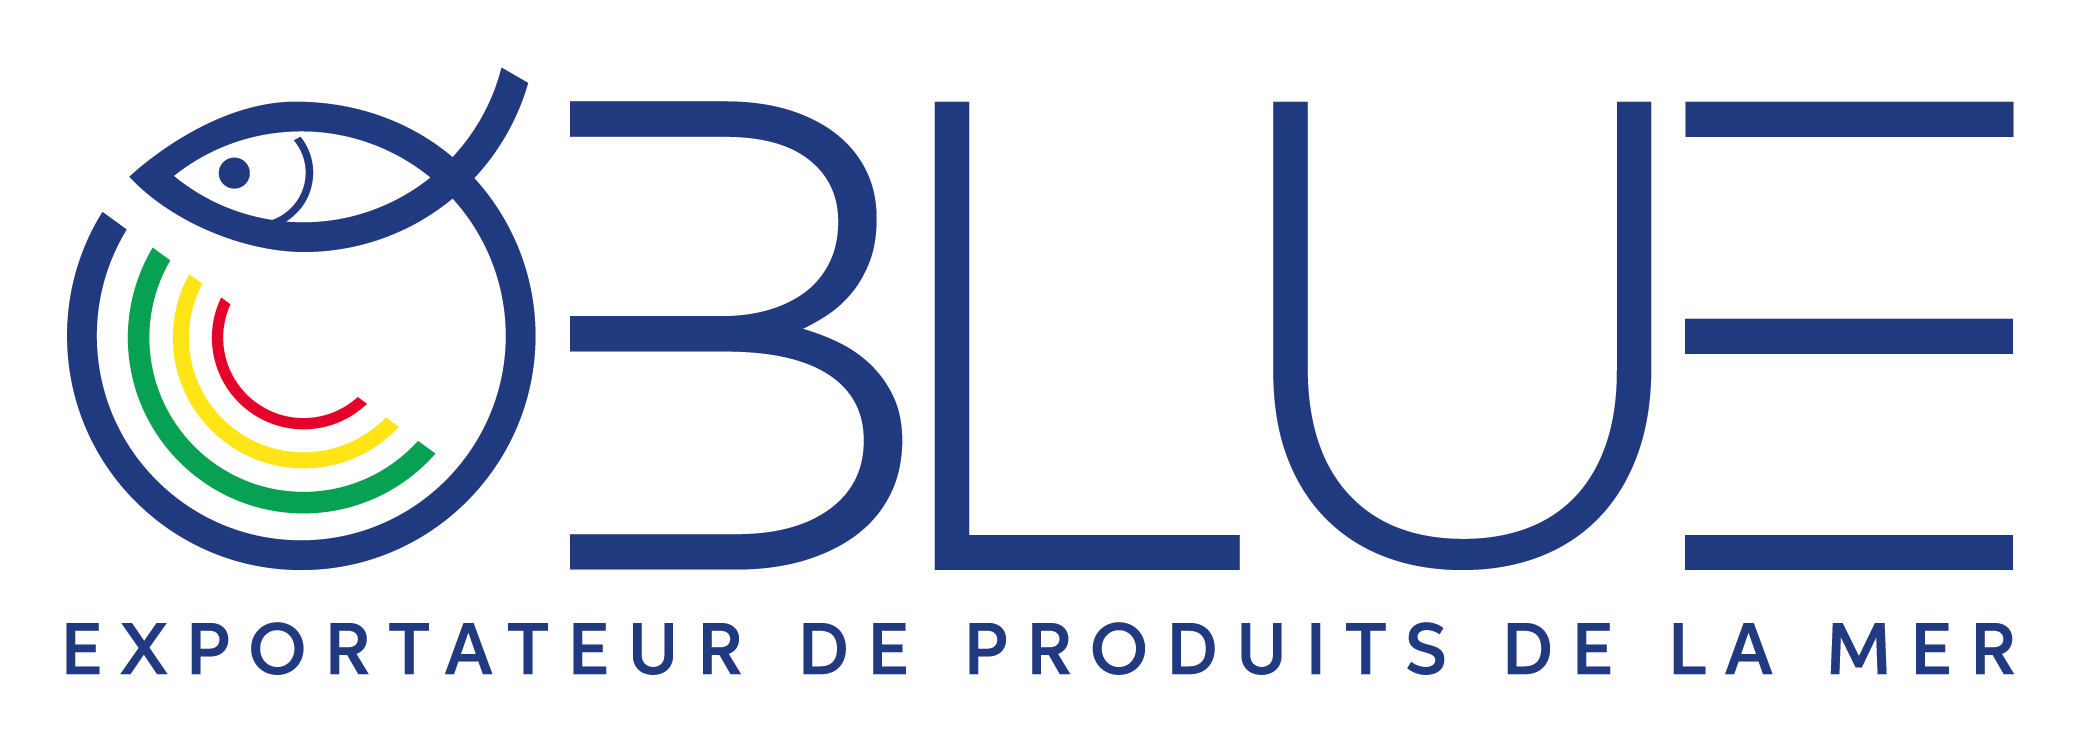 OBLUE-VF ZONE DE RESERVE